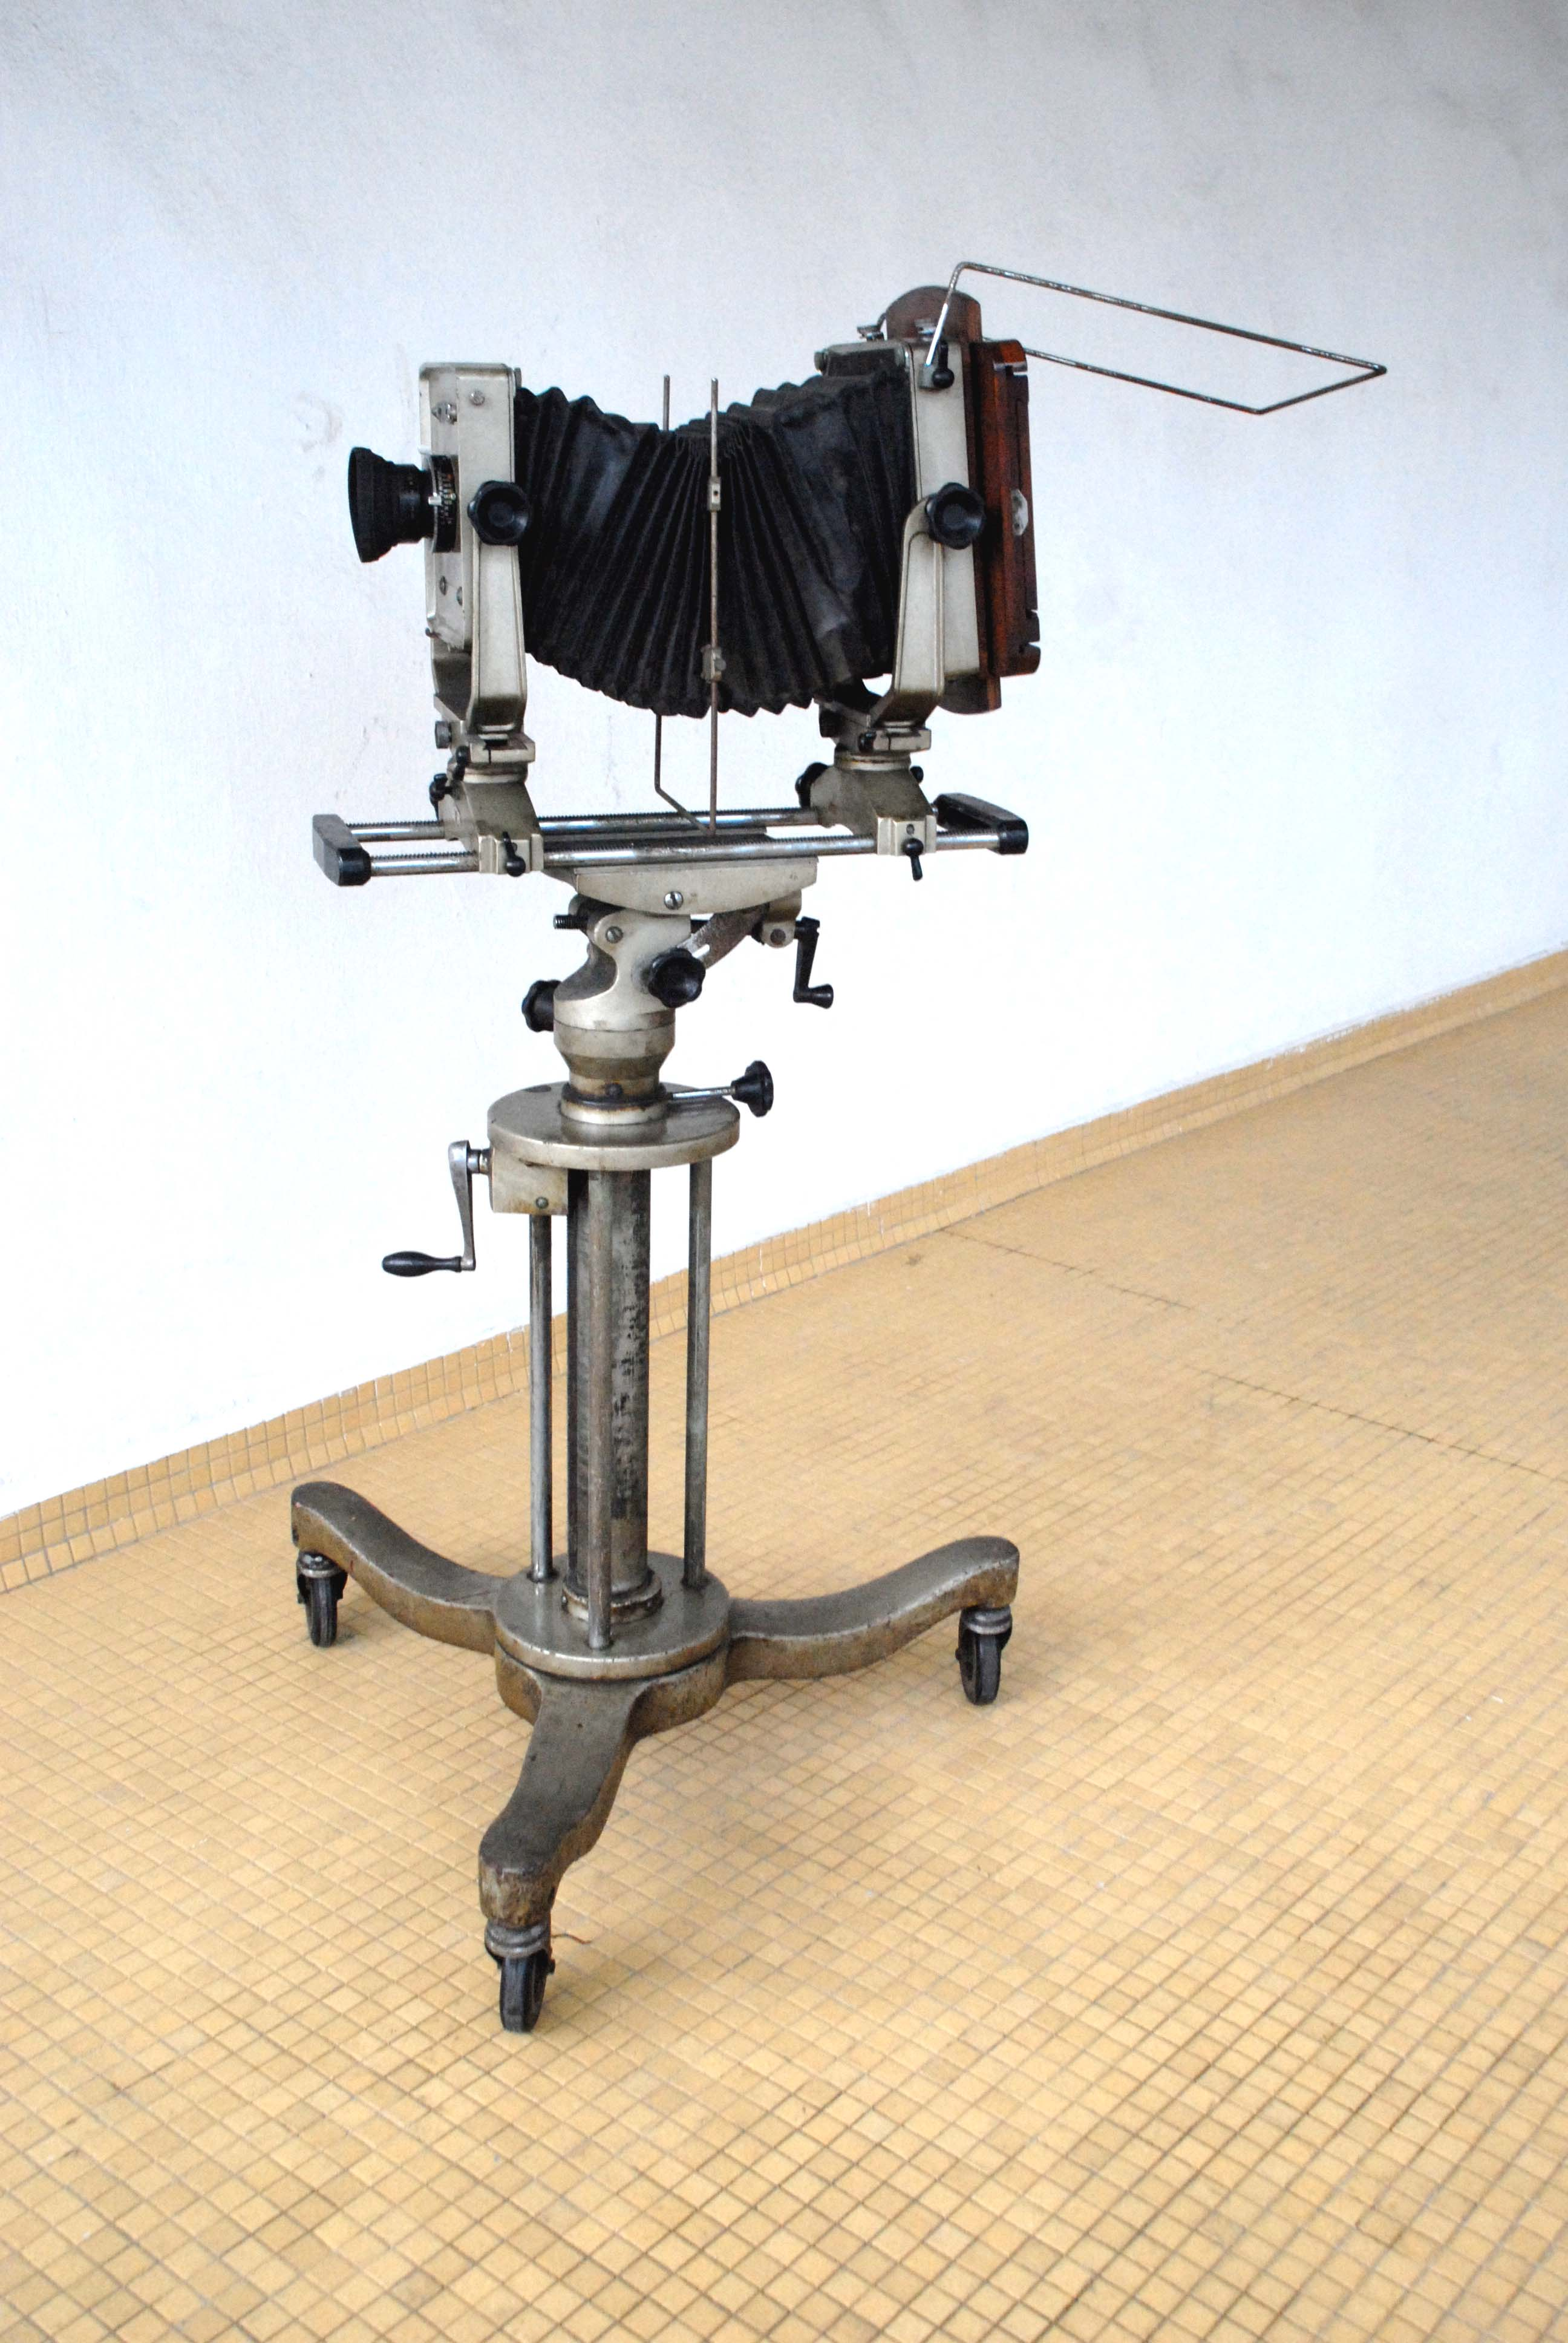 FOR SALE: *HURRY! Collectible Vintage Studio Camera for Sale.